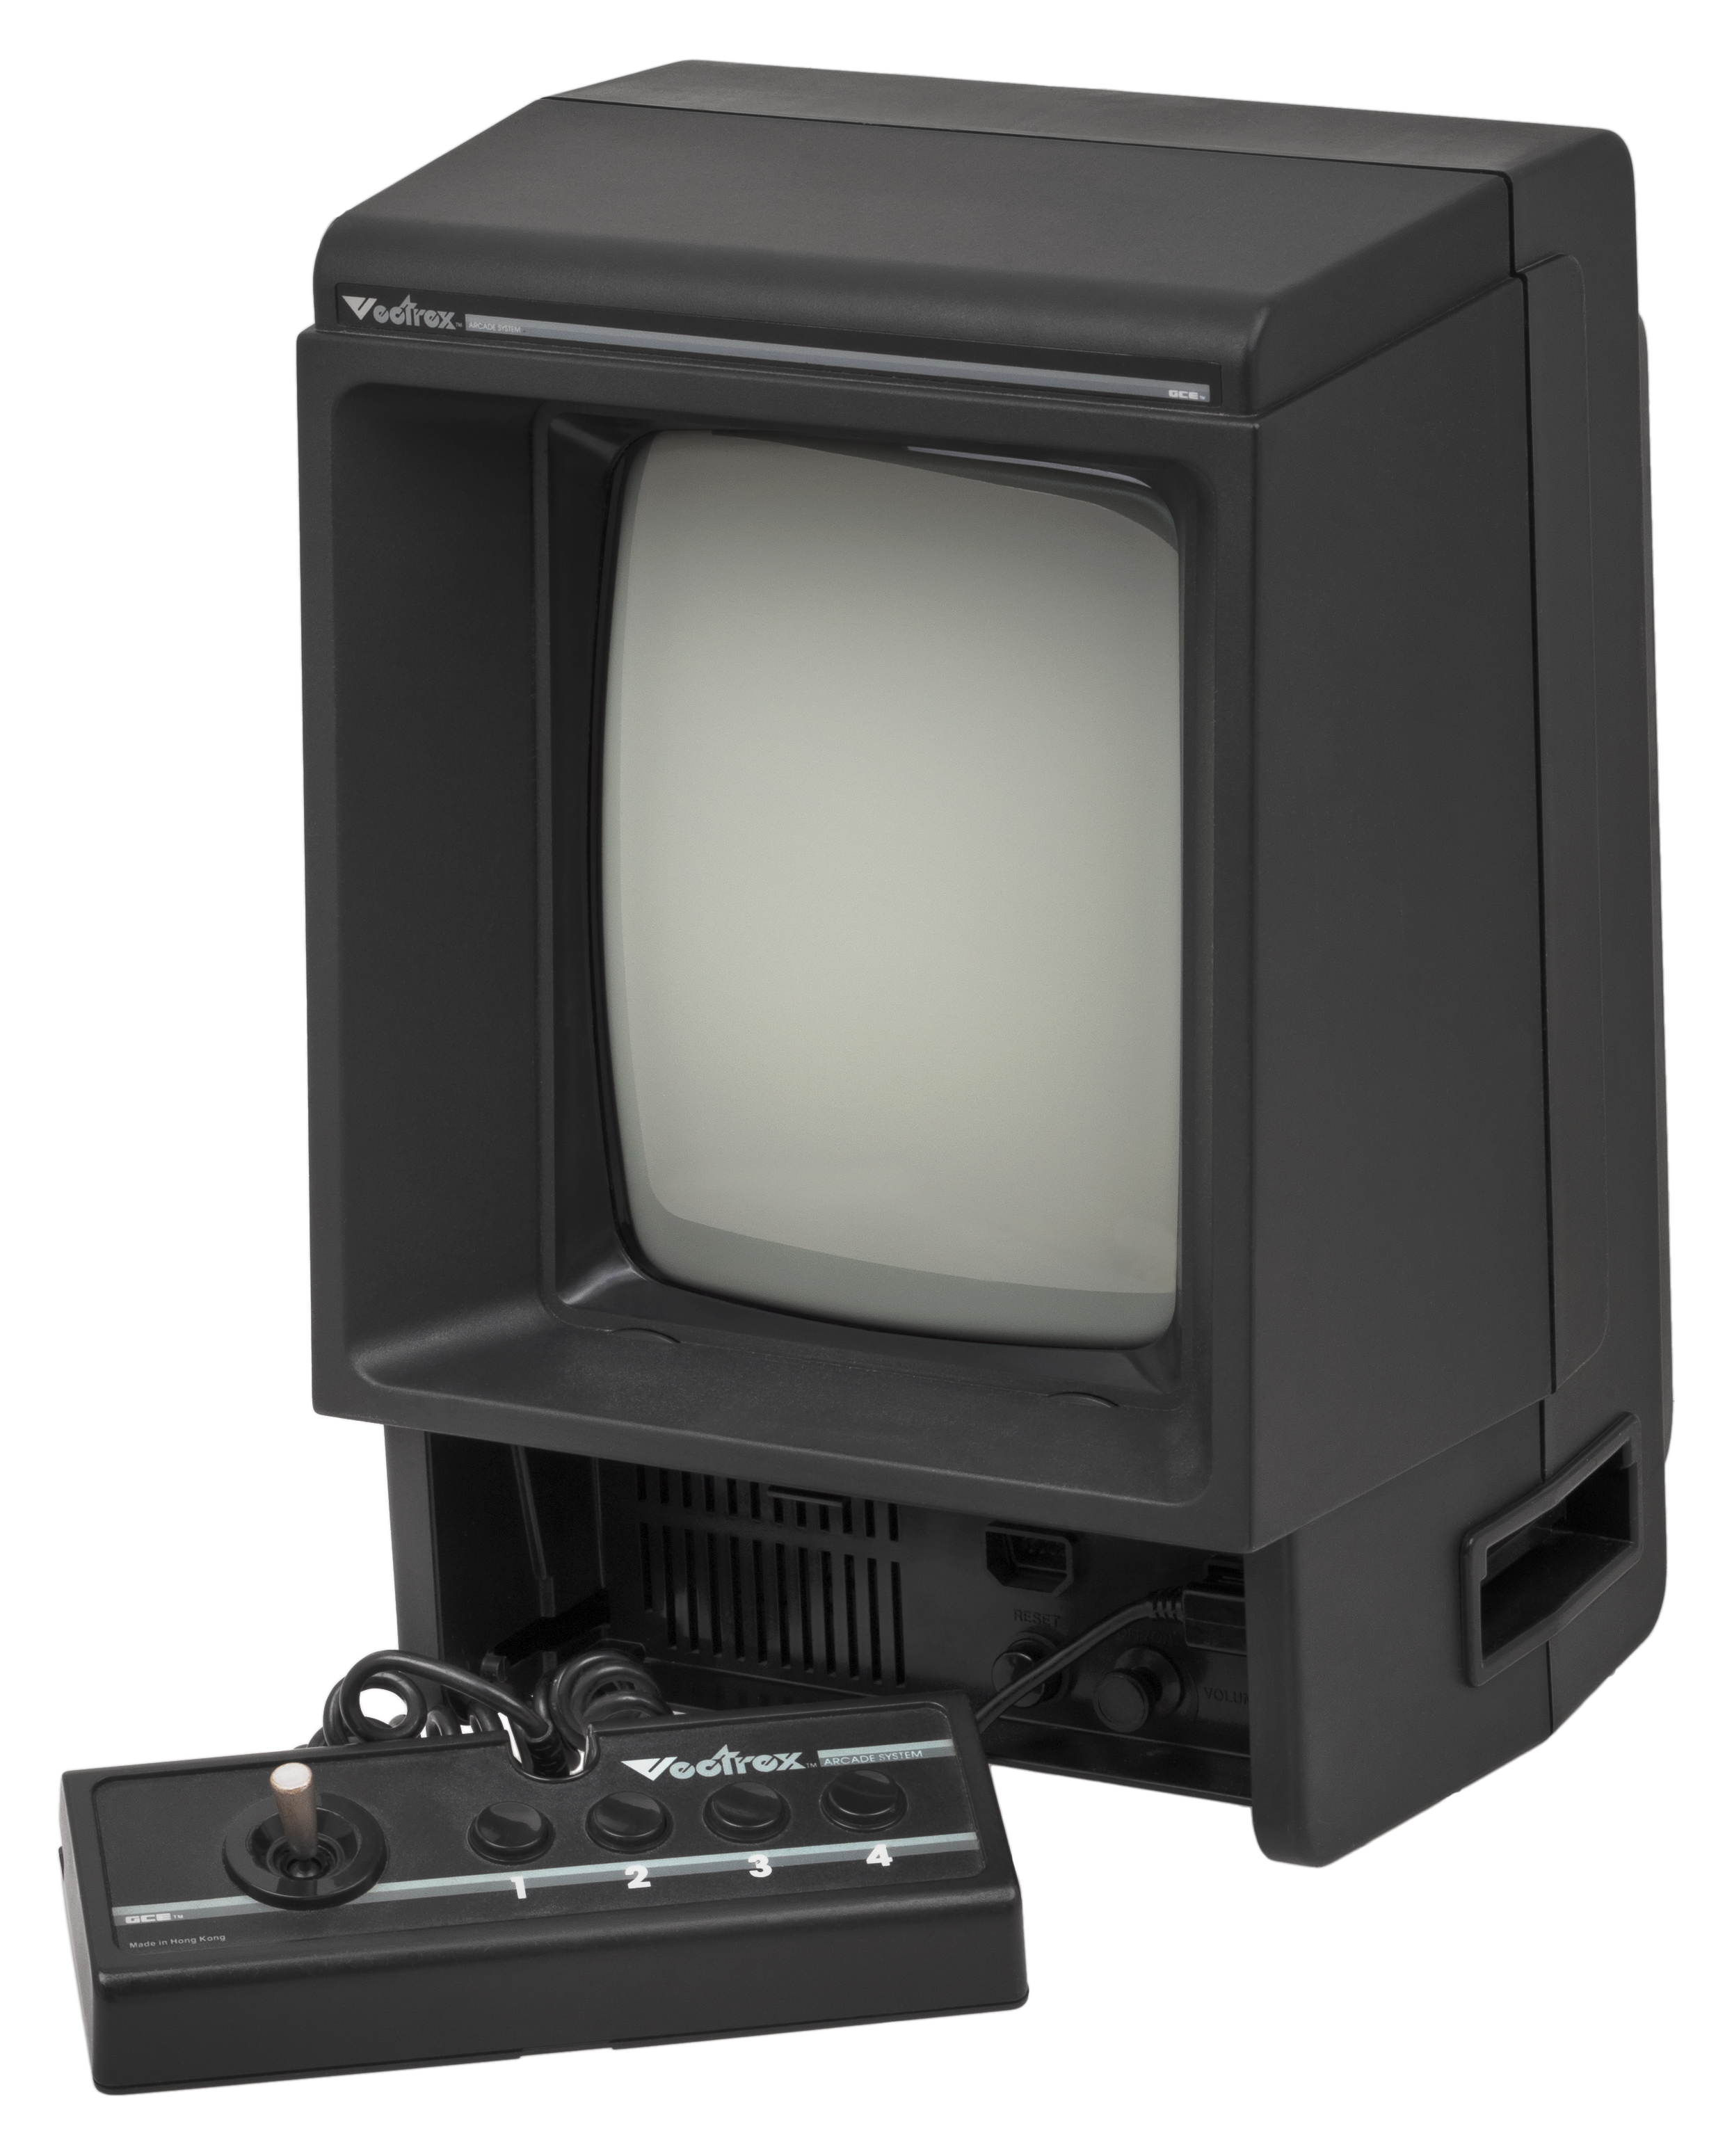 Vectrex wikiwand for What is console